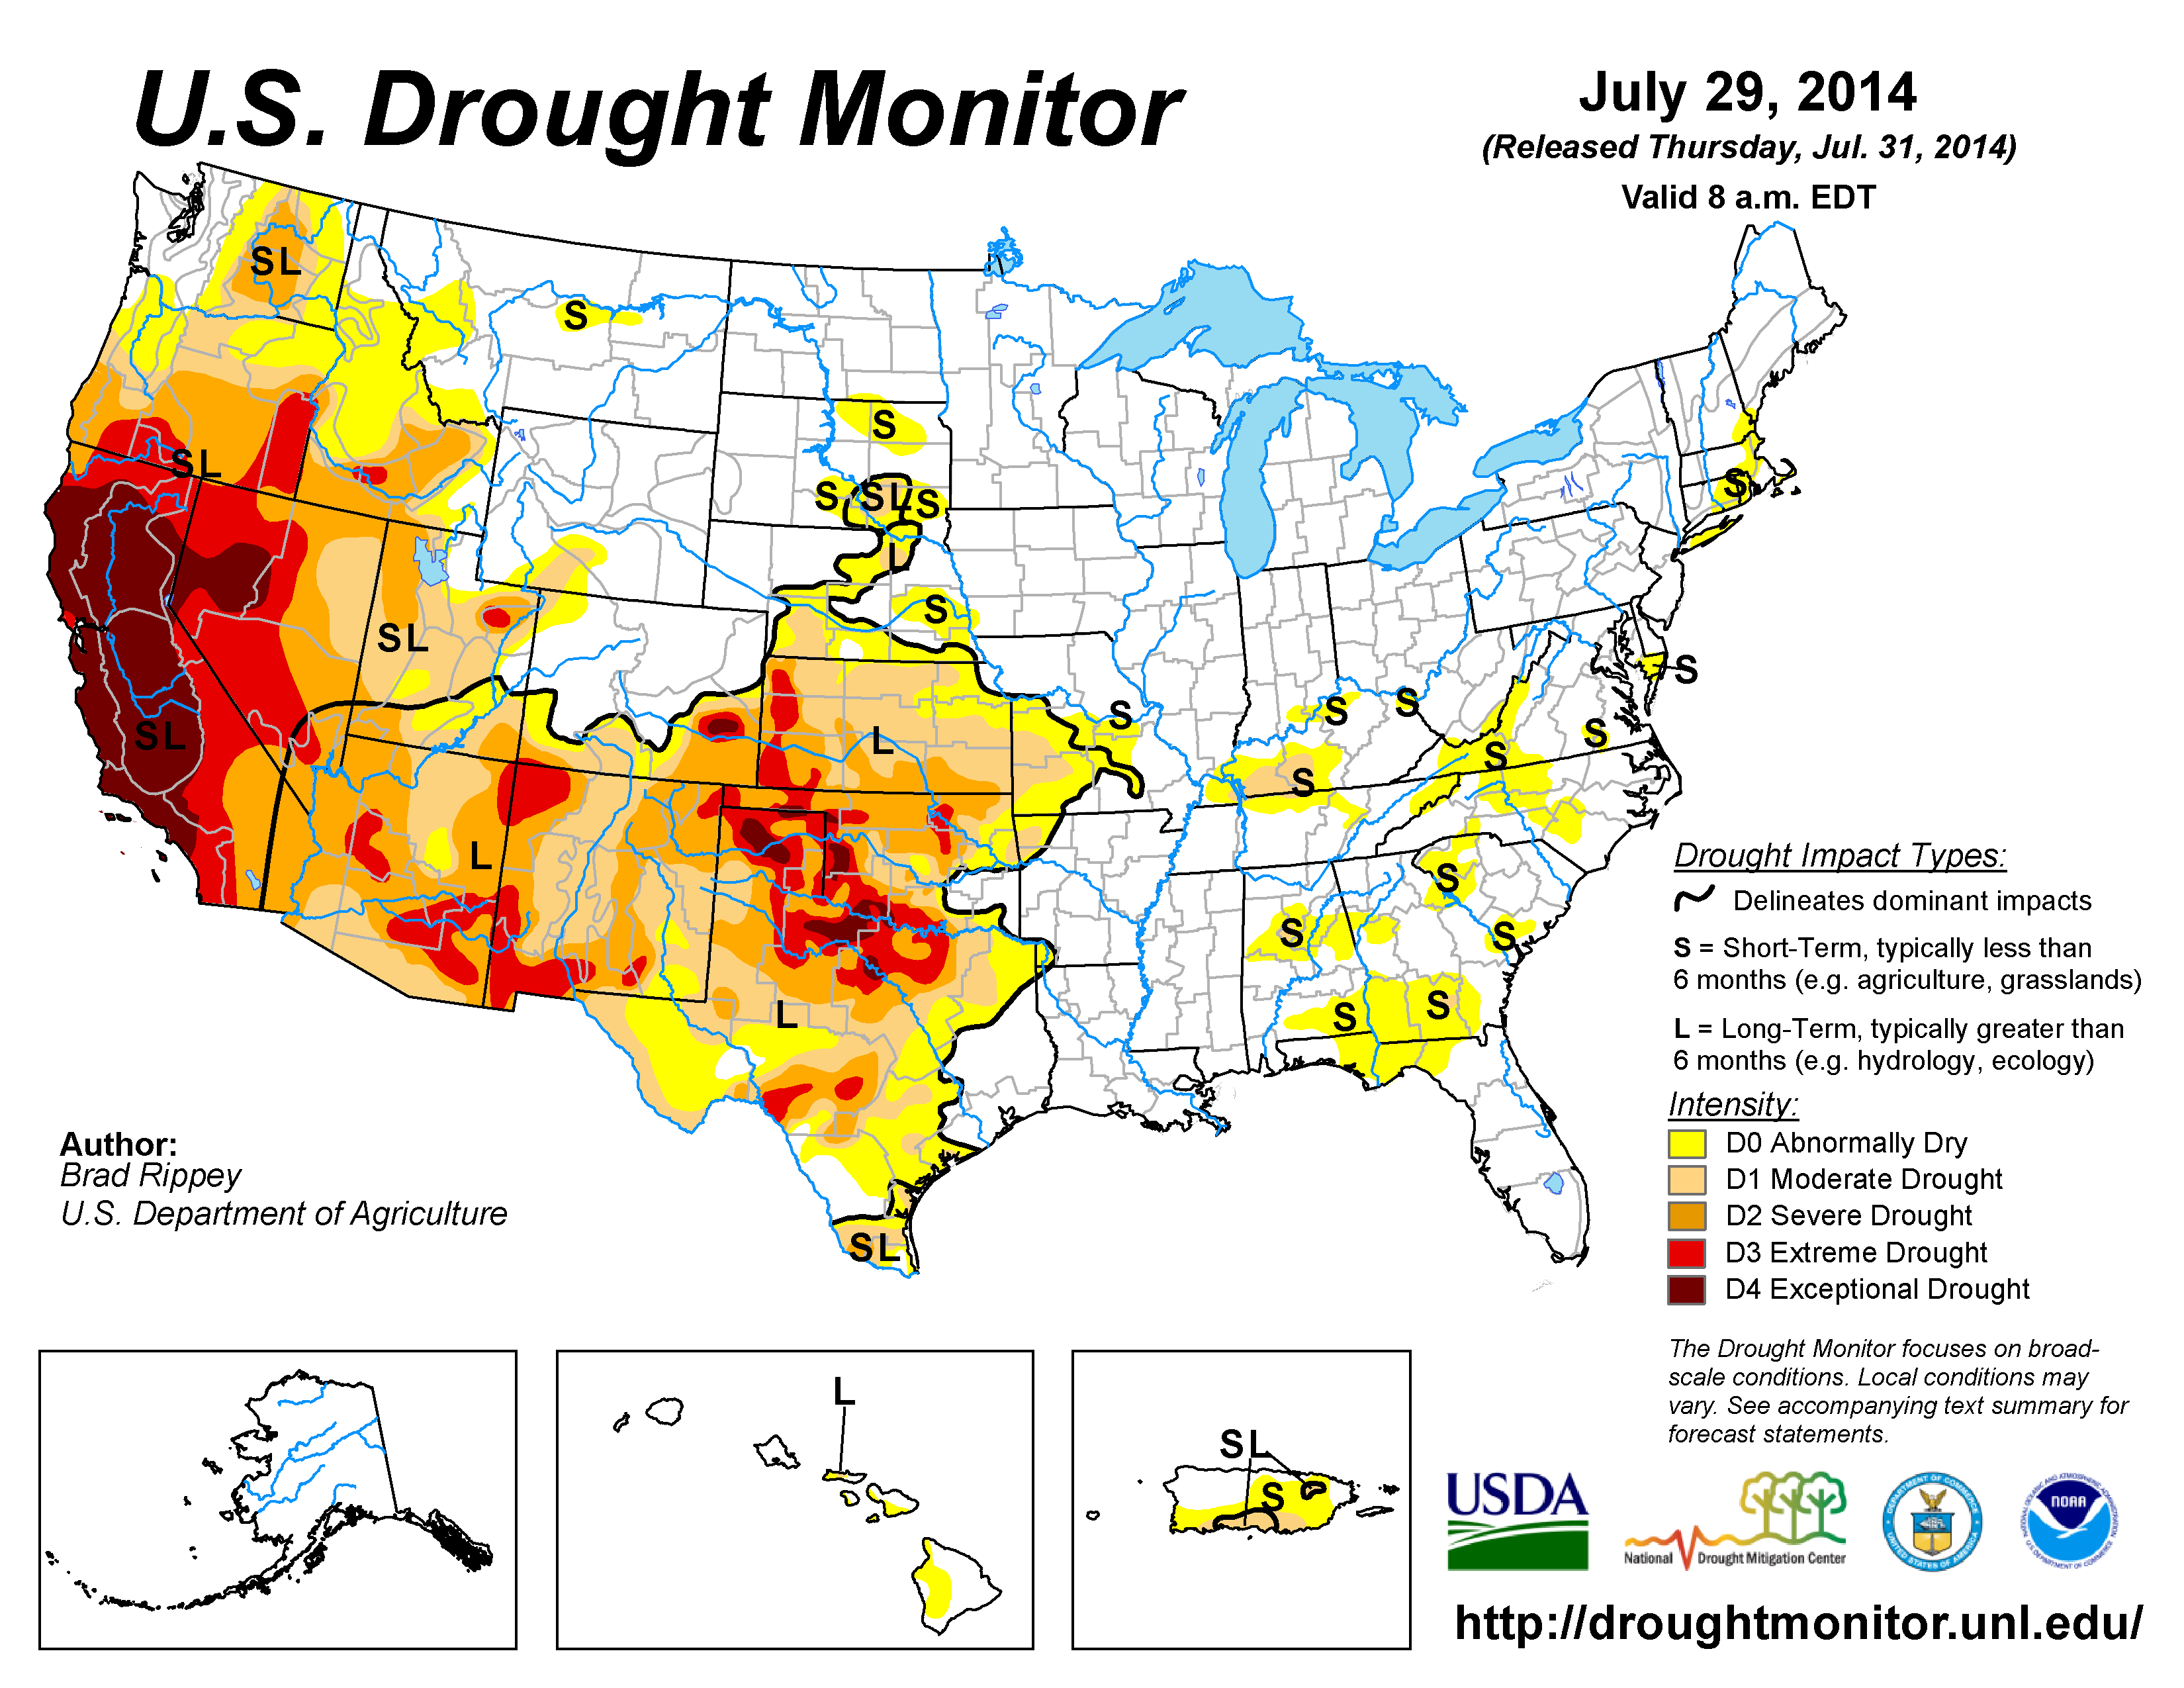 The U.S. Drought Monitor drought map valid July 29, 2014